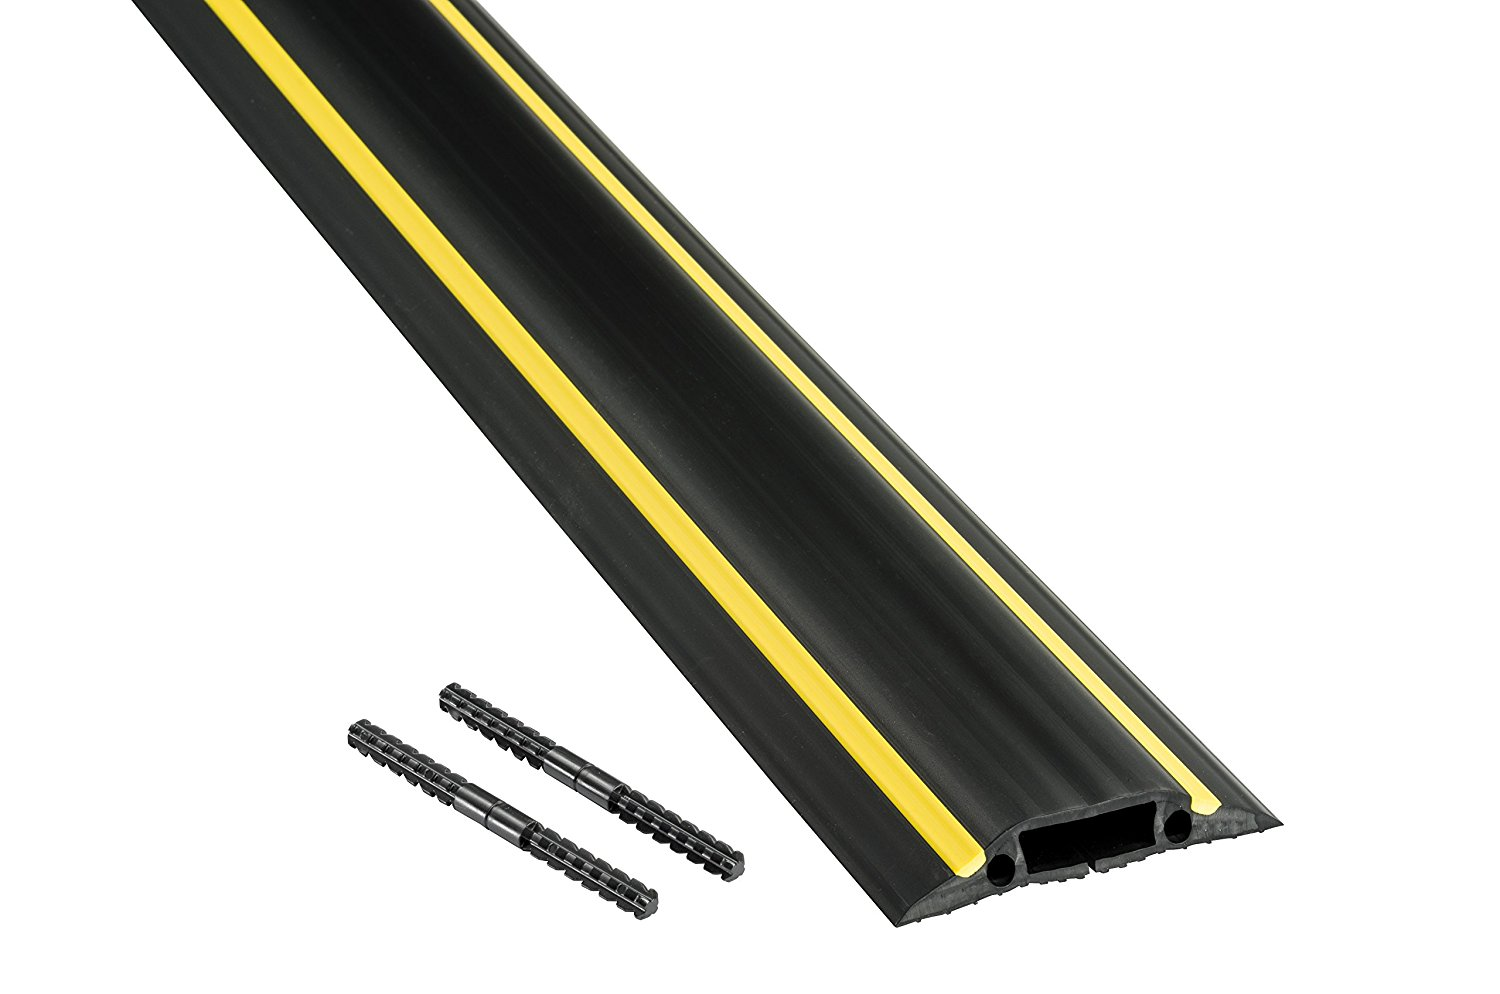 Cable Tidies D-Line Medium Duty Cable Cover 1.8m Black & Yellow